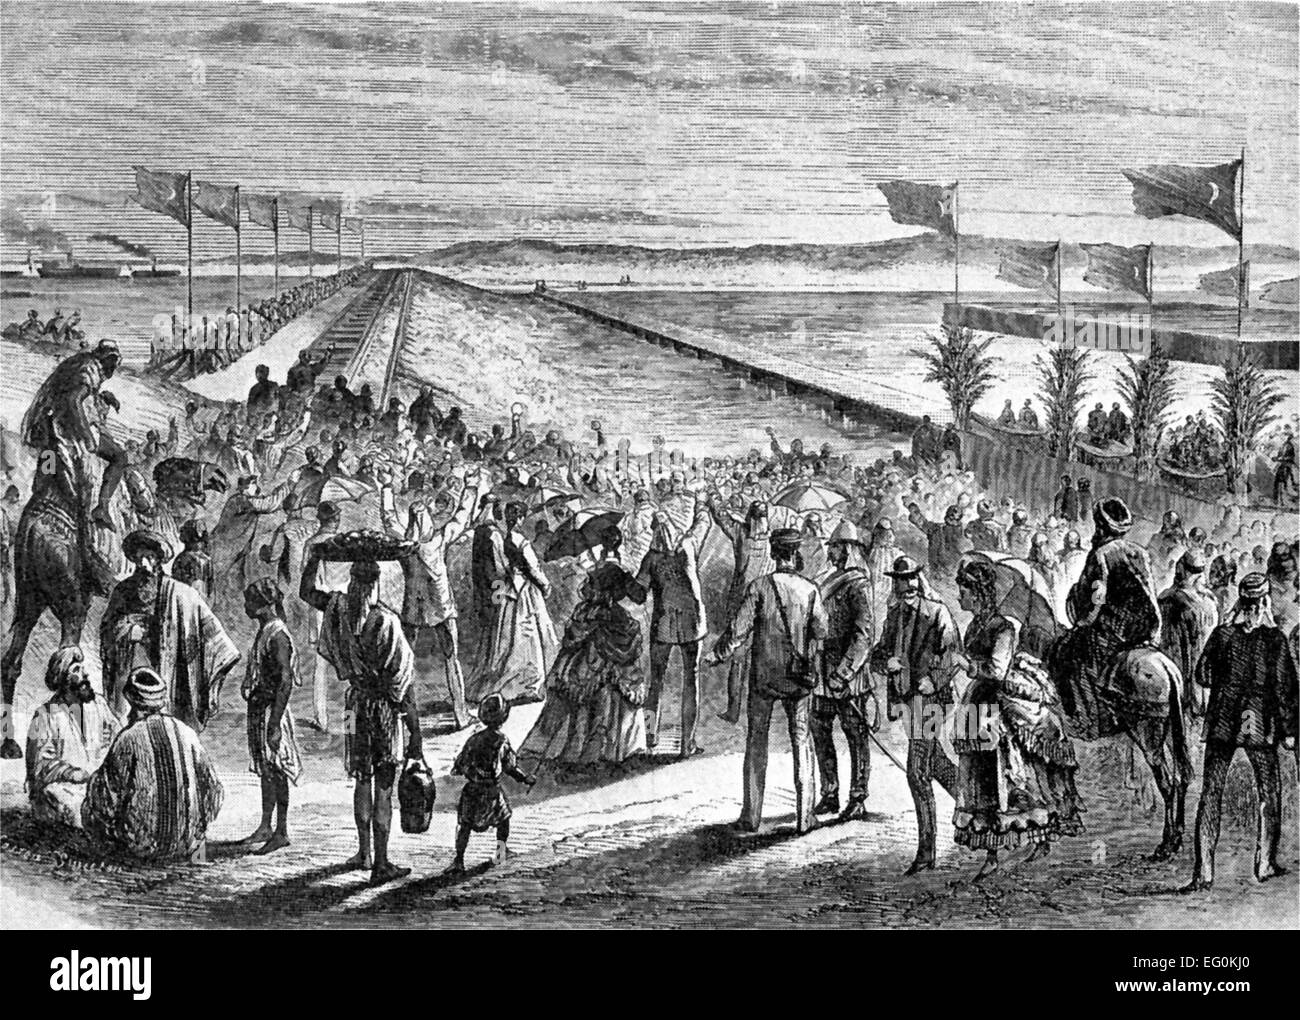 OPENING OIF THE SUEZ CANAL  in November 1869 - Stock Image